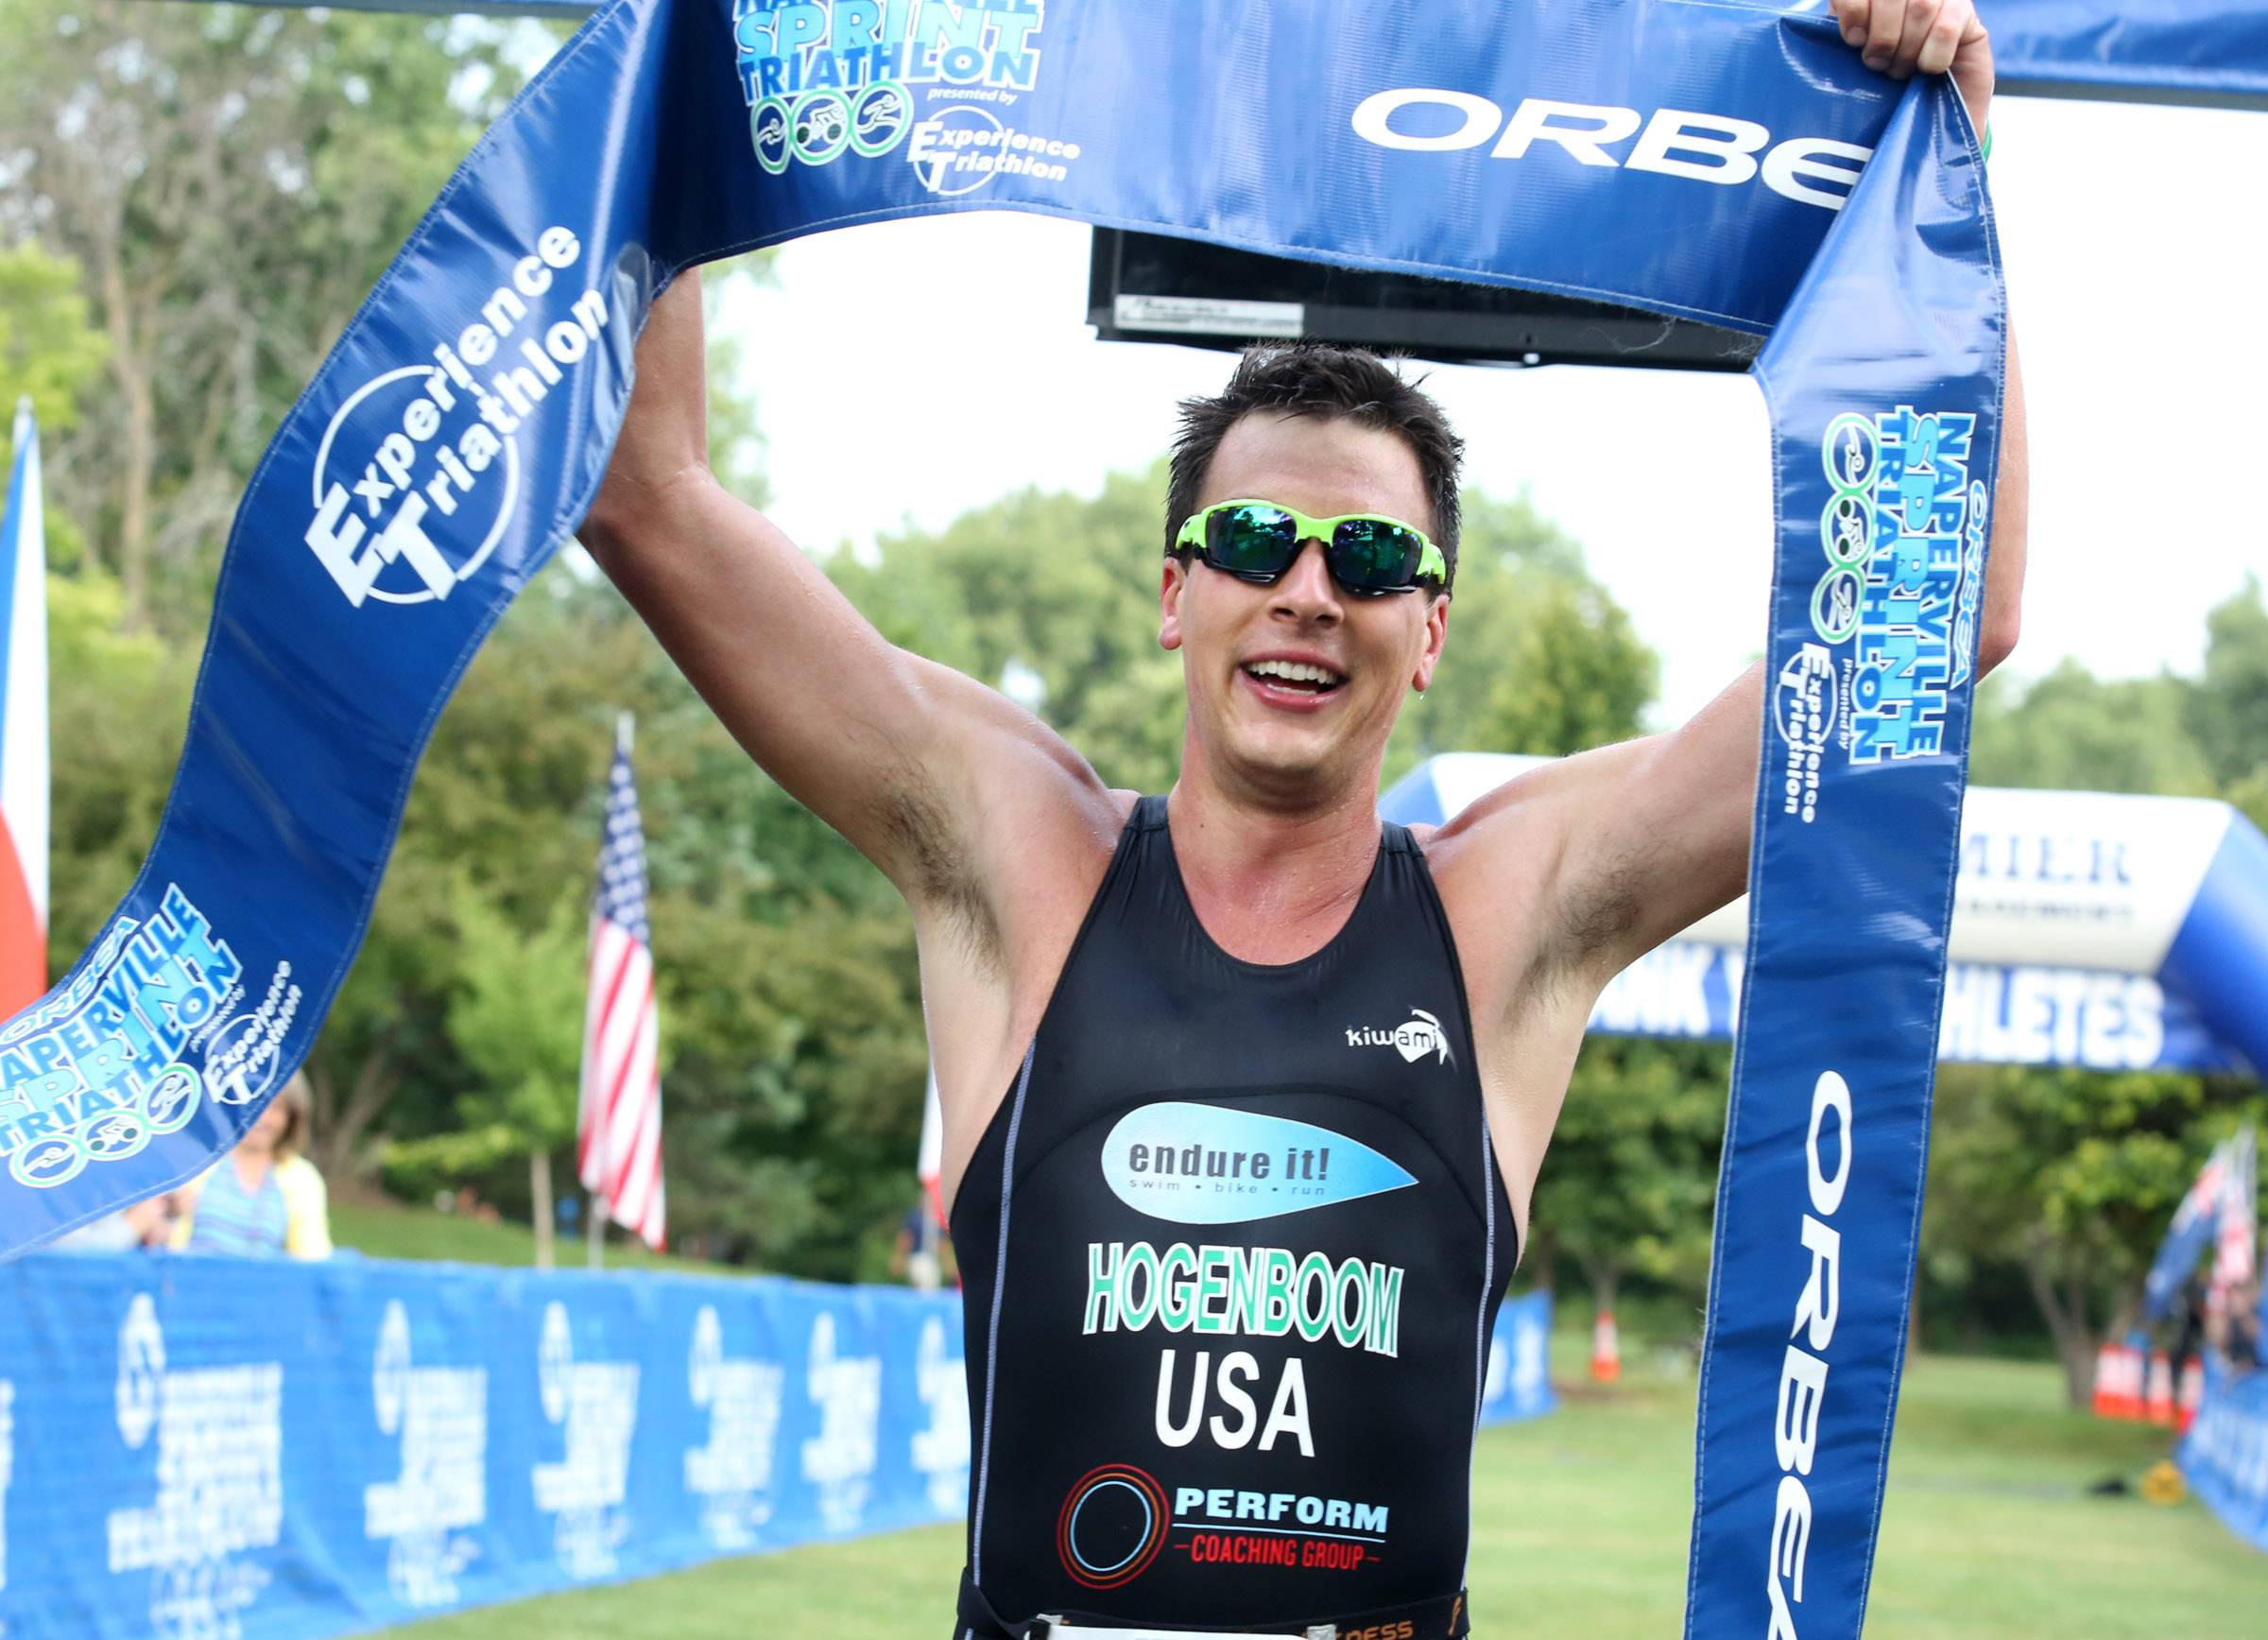 Eric Hogenboom of Naperville wins the Orbea Naperville Sprint Triathlon at Centennial Beach on Sunday in Naperville. The event, in its 14th year, featured a 400-meter swim, 20K bicycle course and 5K run.